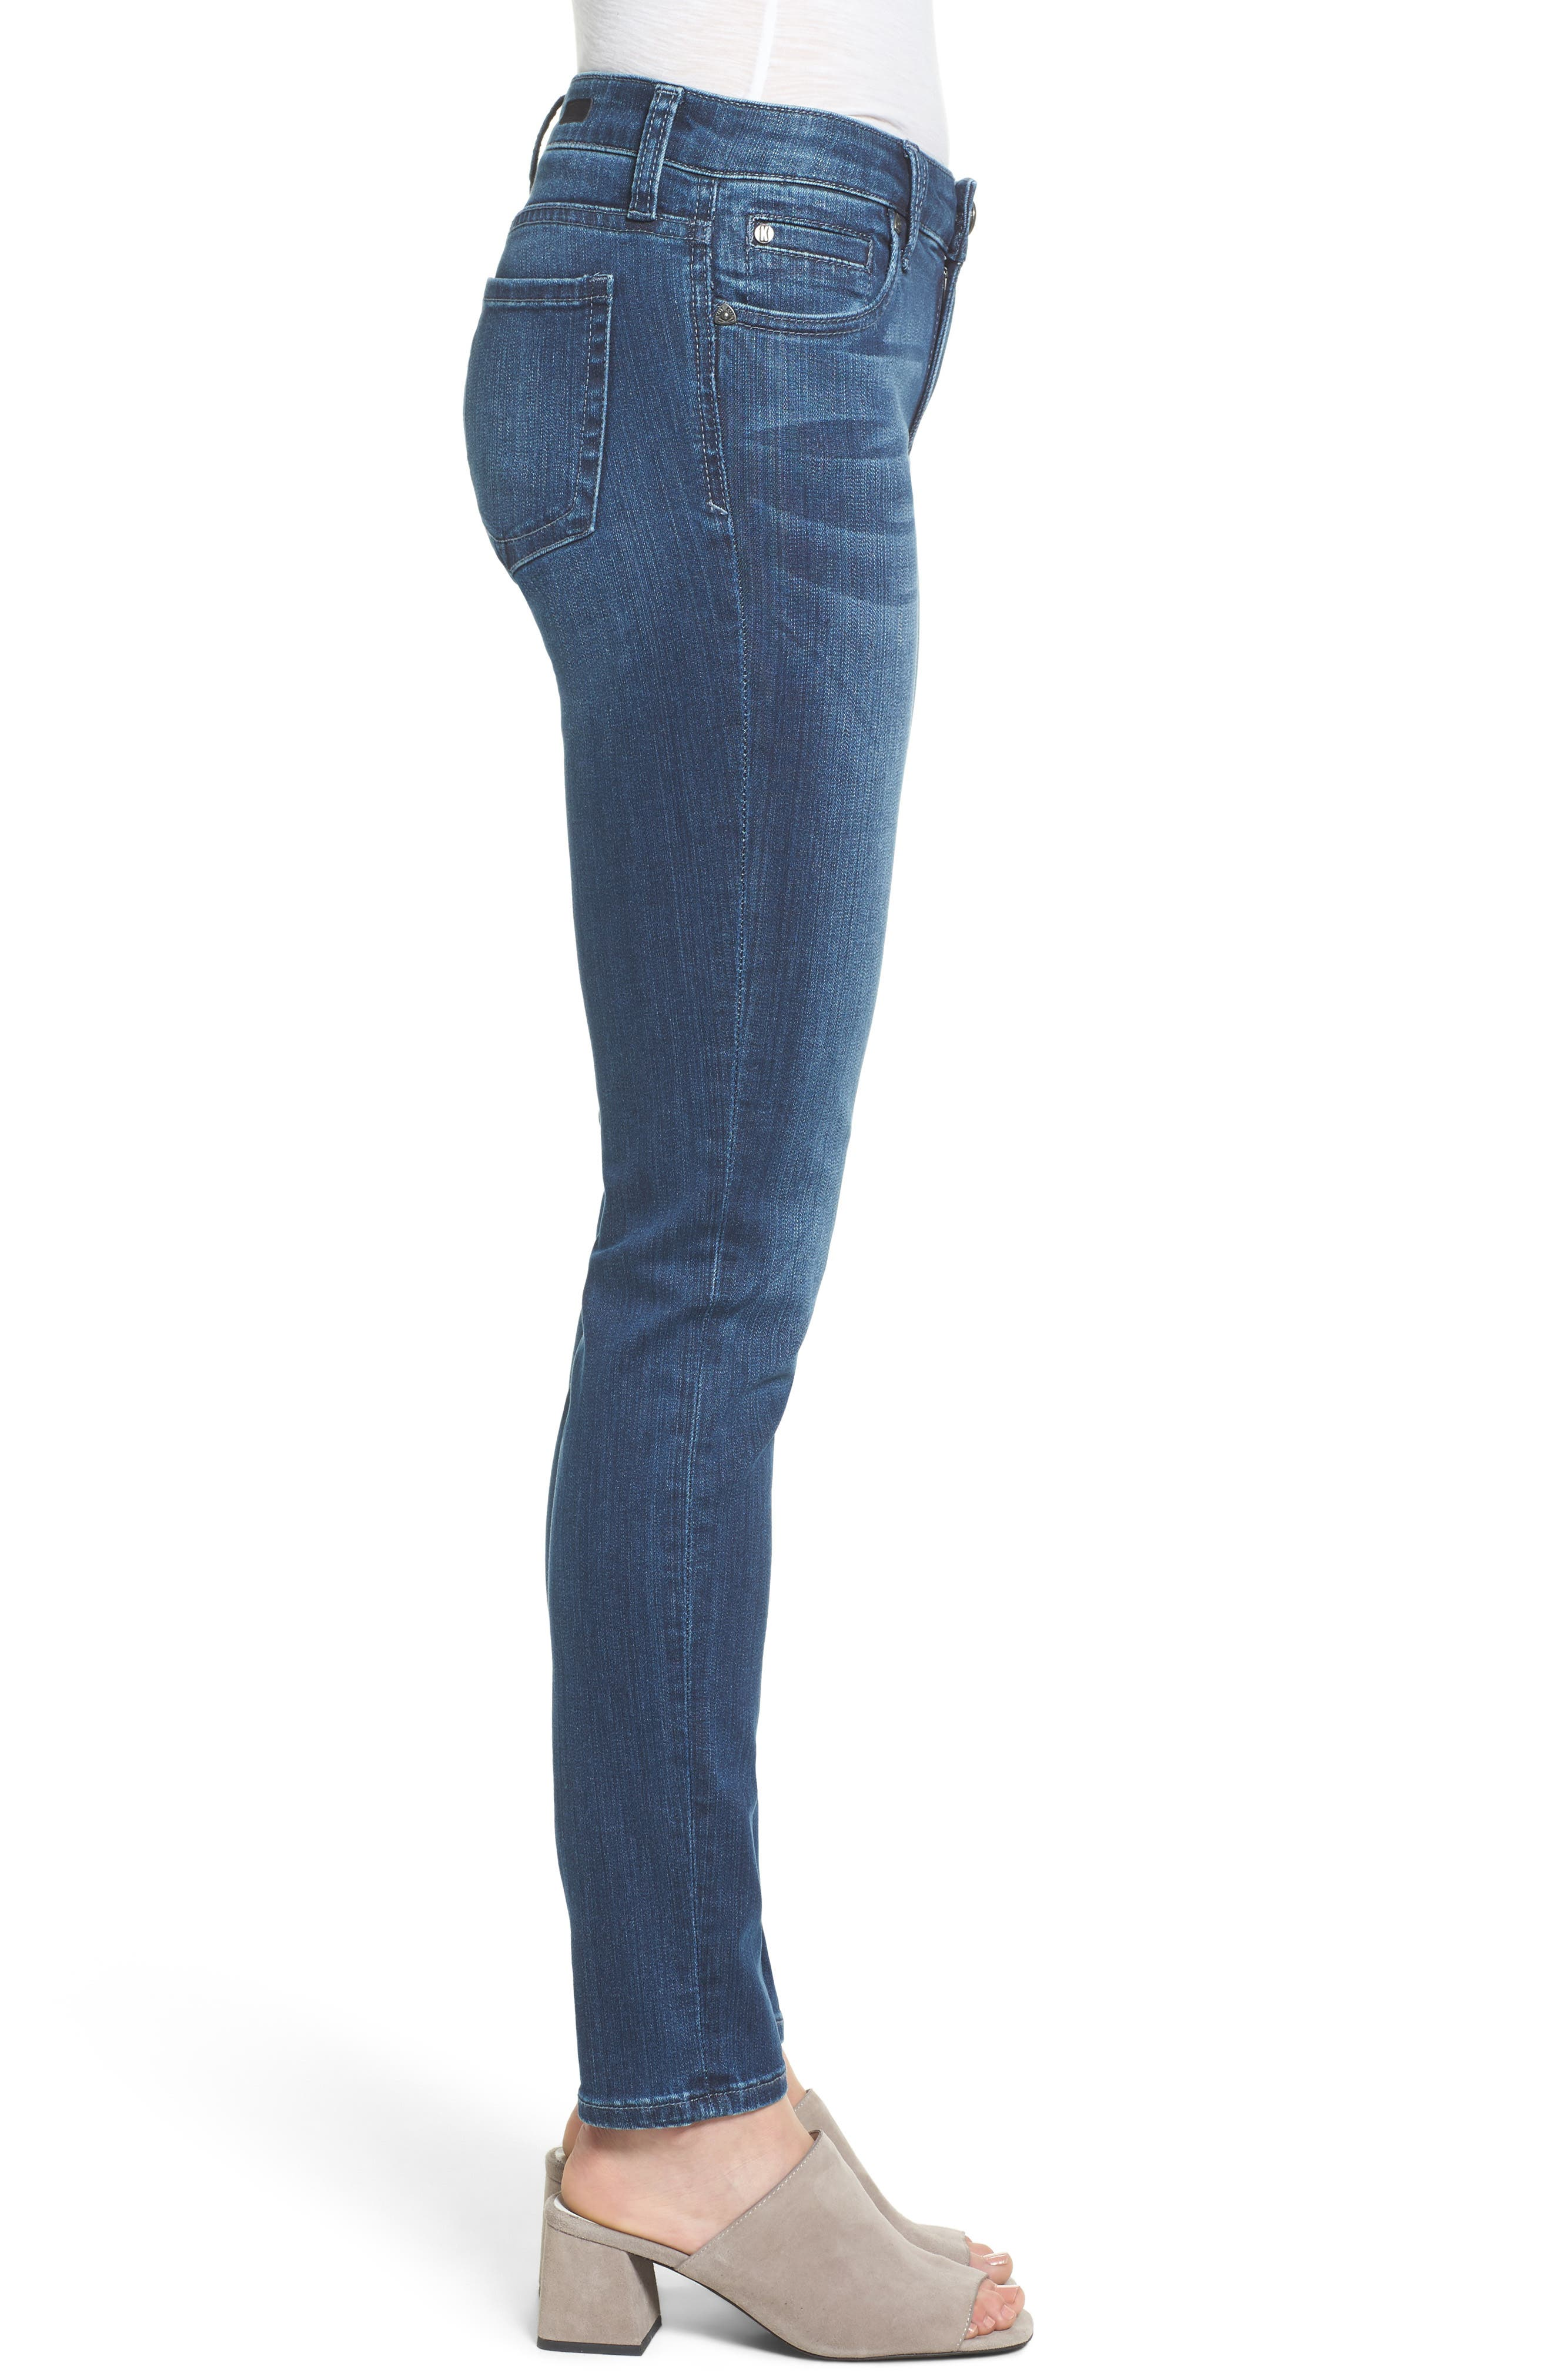 Alternate Image 3  - KUT from the Kloth Diana Stretch Skinny Jeans (Moderation) (Regular & Petite)